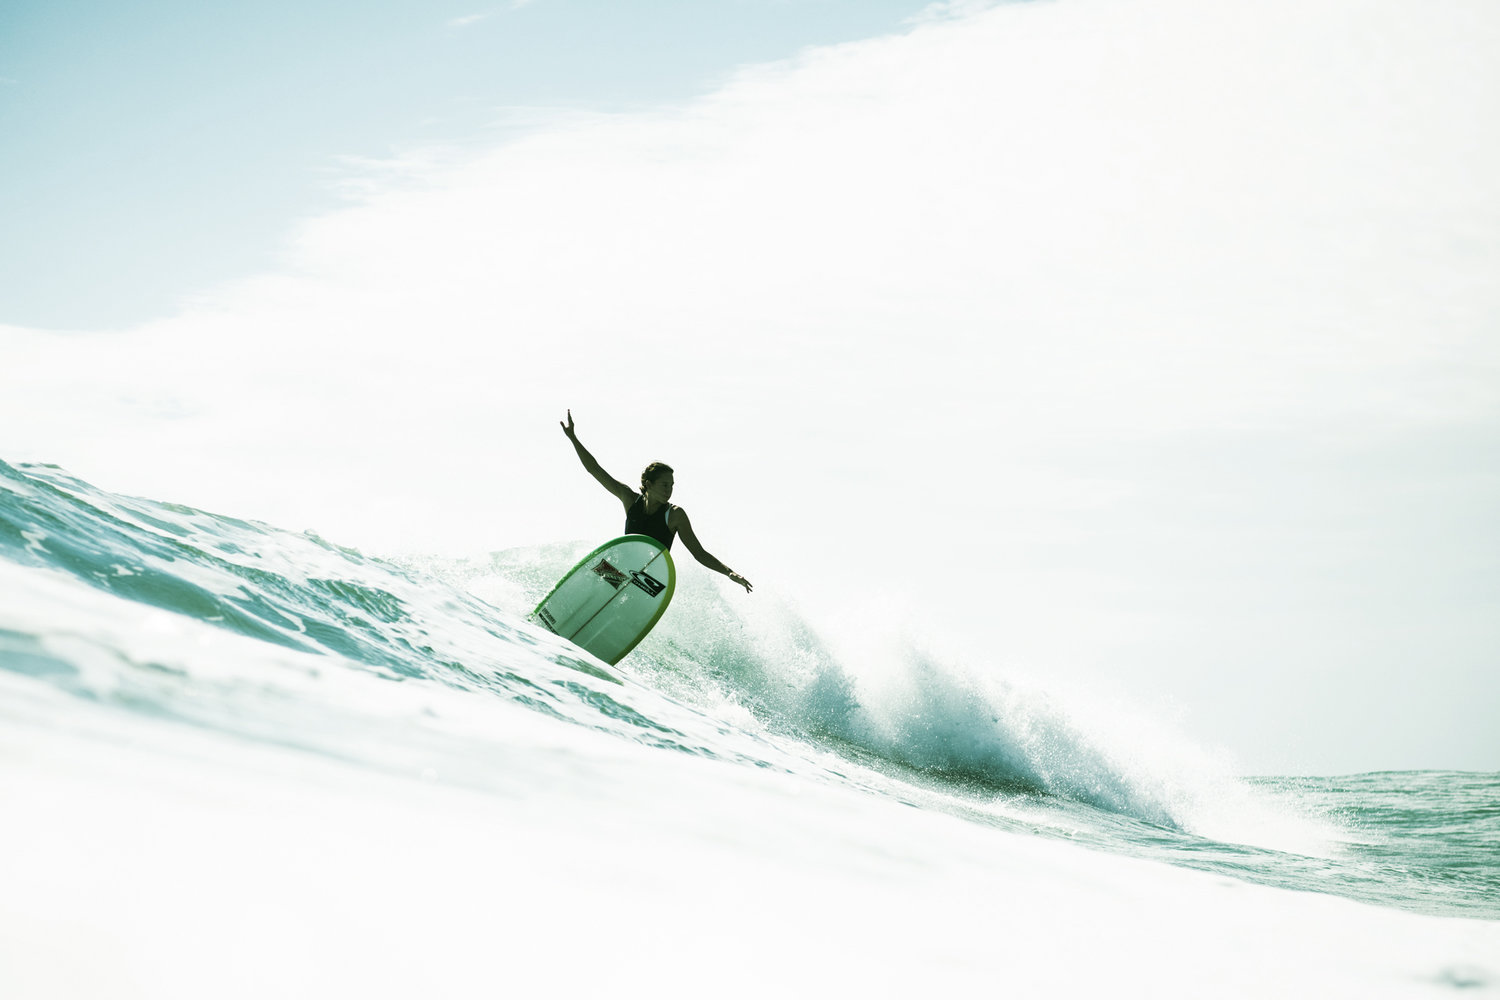 9ef6c39cdb Major surfing contest coming to Long Beach